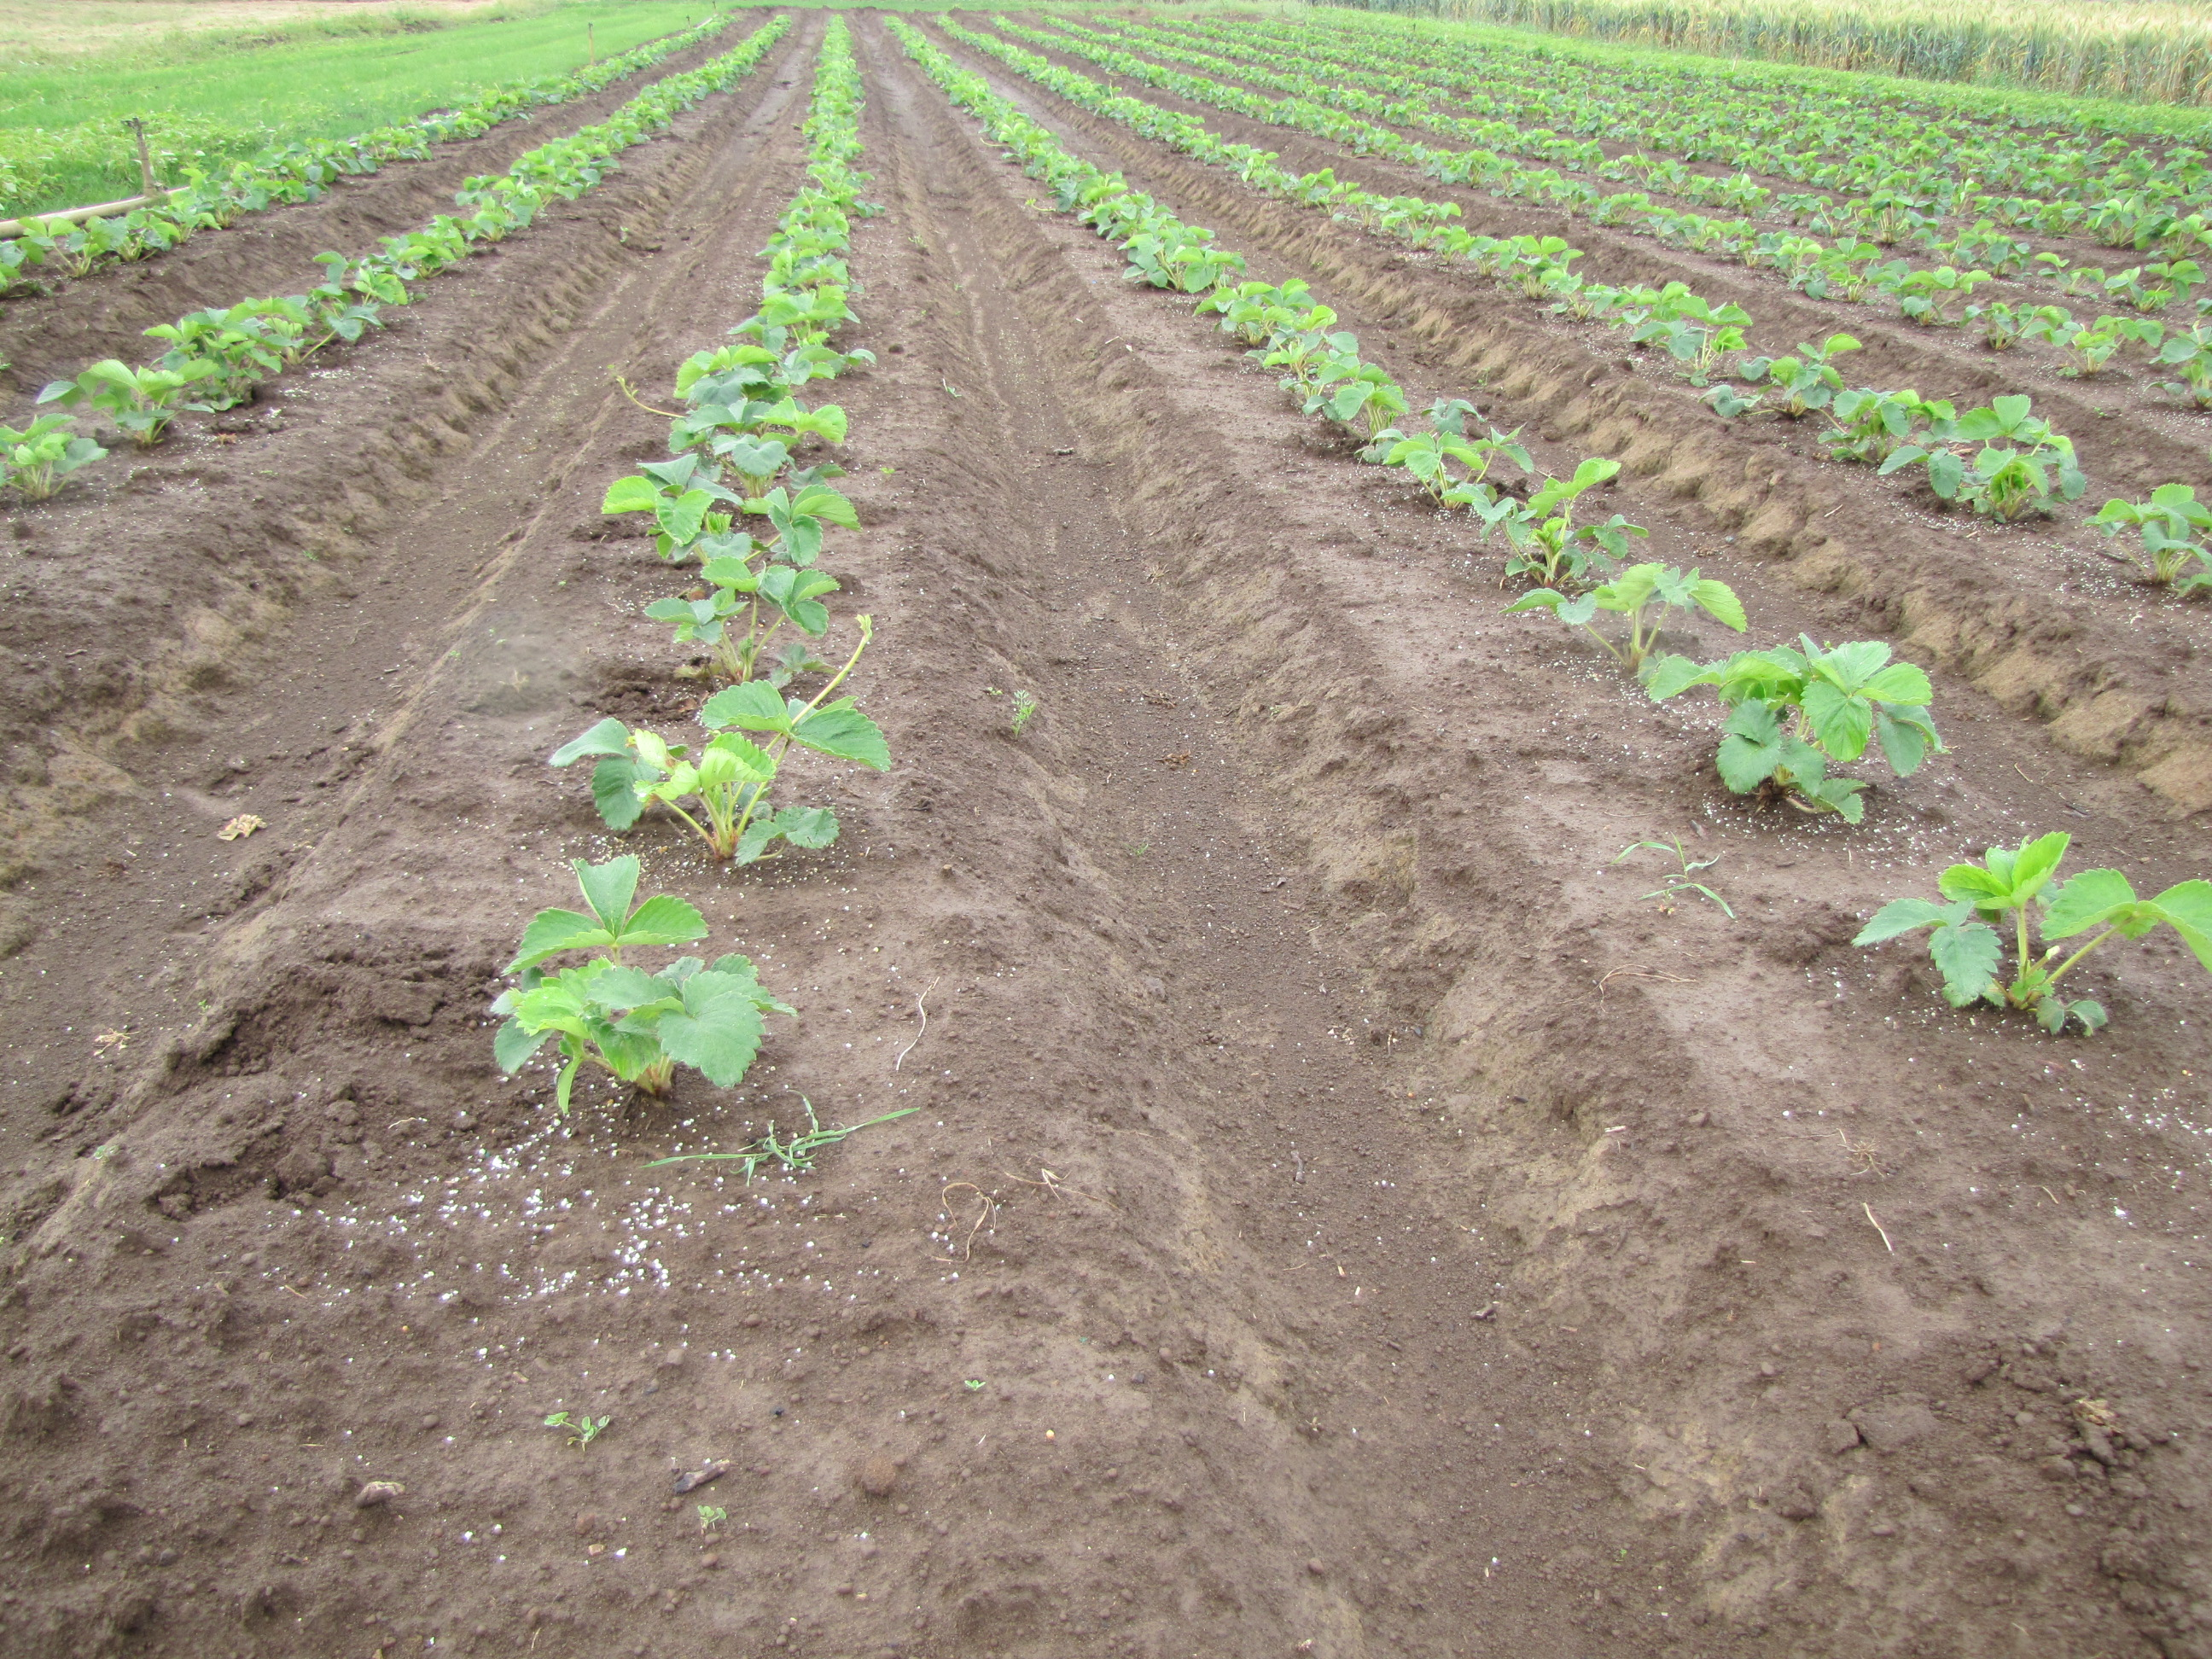 Figure 7. Granular fertilizer applied to the in-row area of June-bearing strawberries in the planting year.